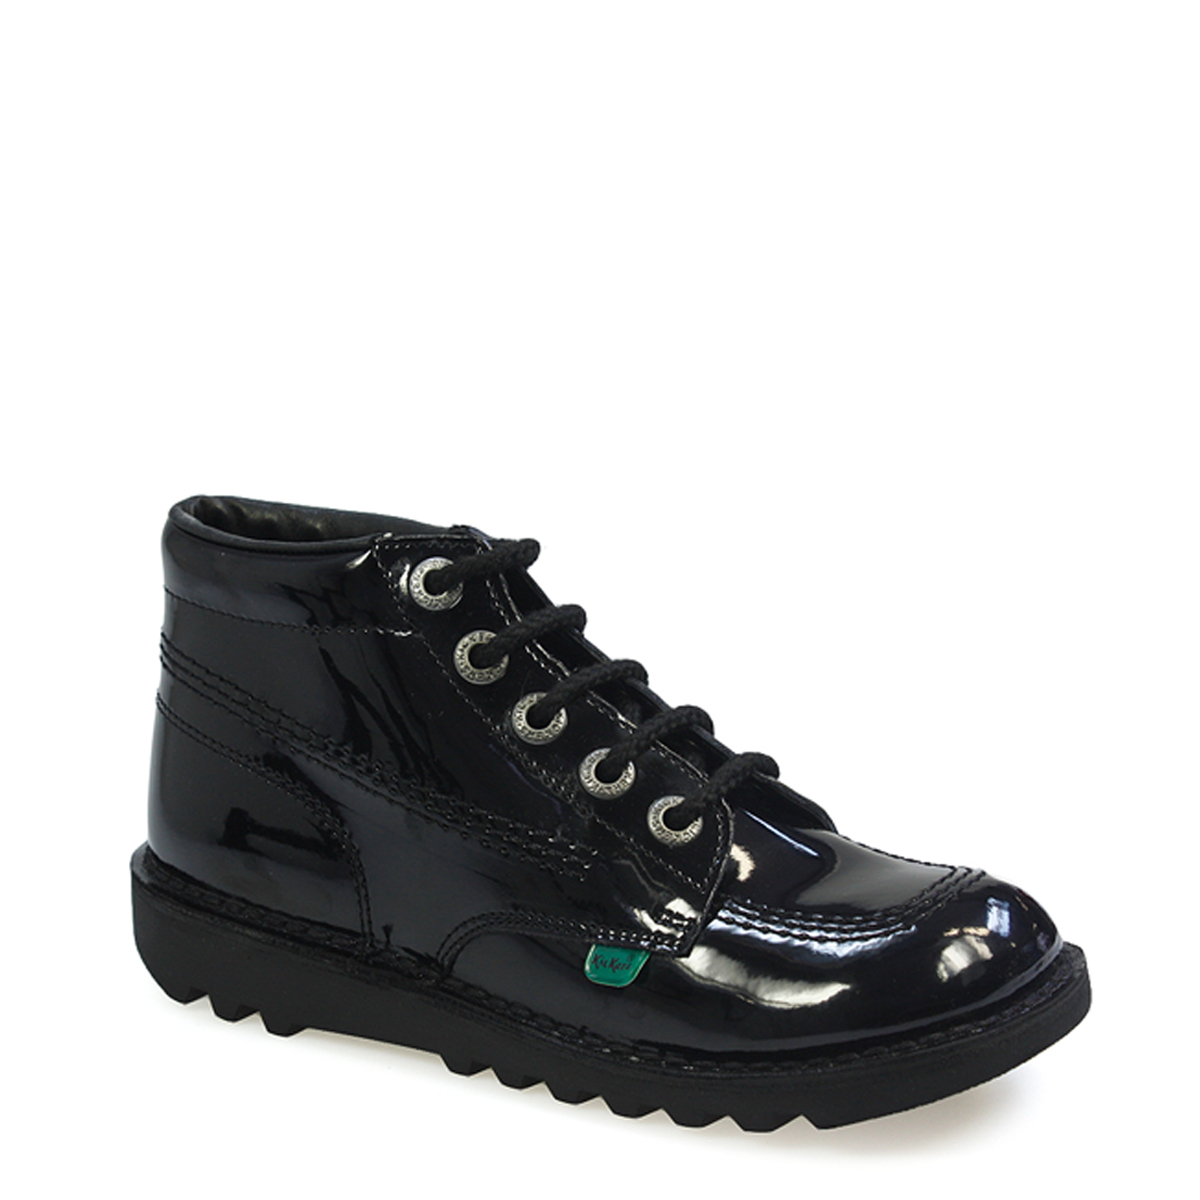 Kickers-Youth-Kick-Hi-Black-Patent-Leather-Shoes-Kids-Winter-Ankle-Boots